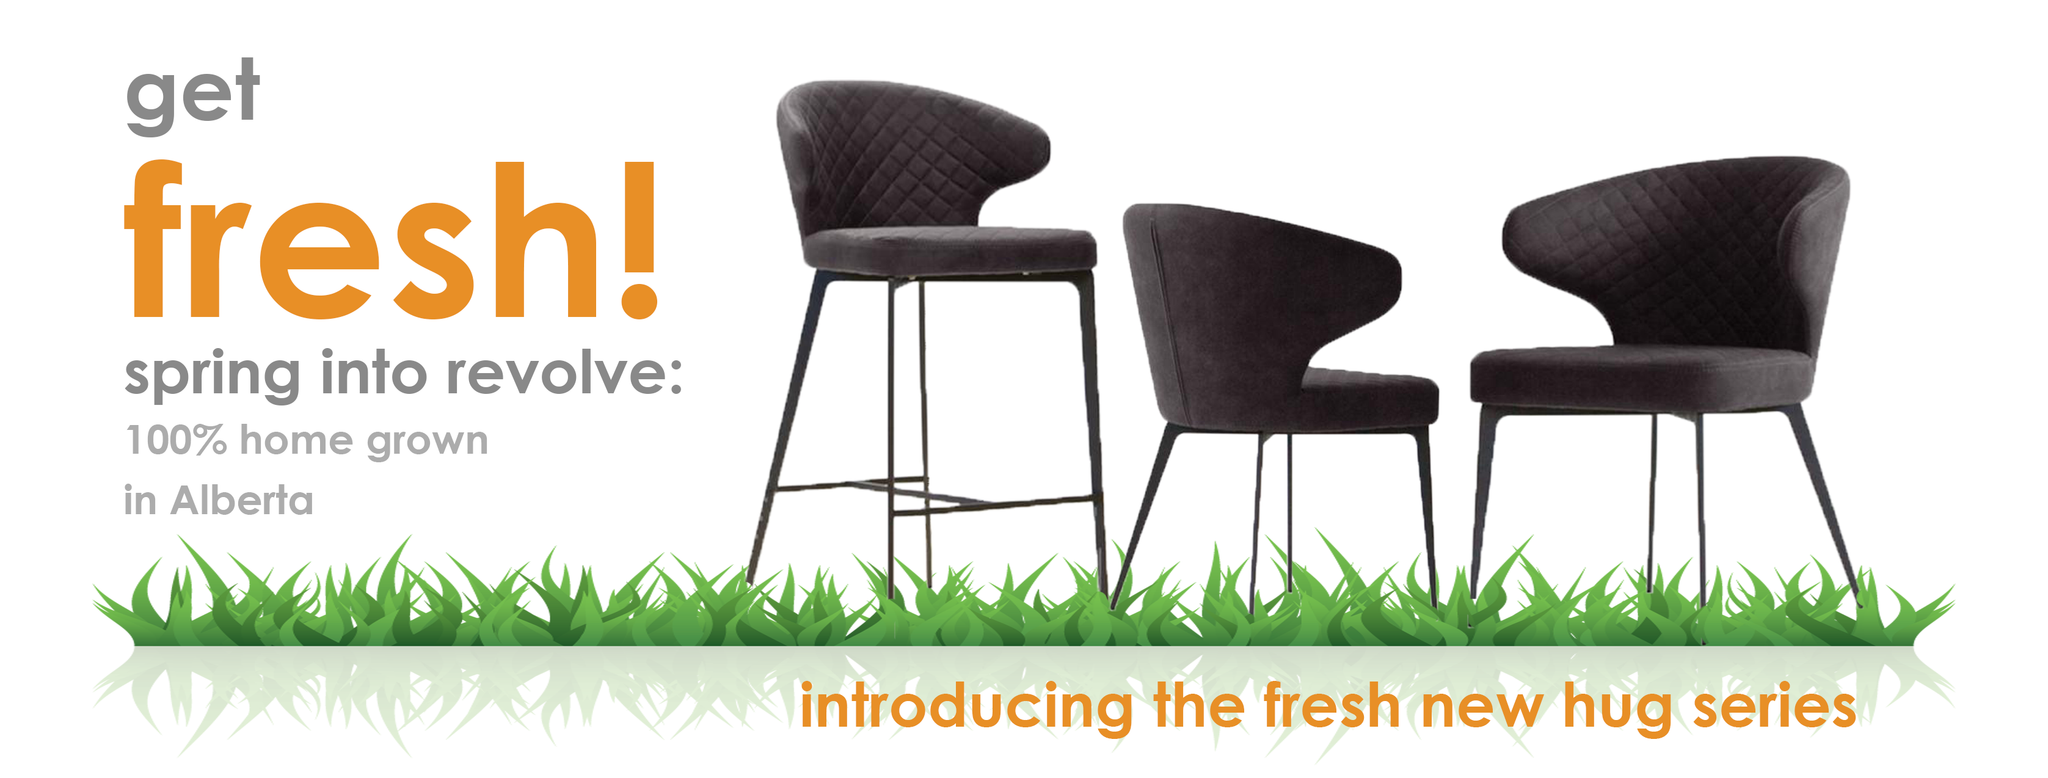 b15d1c5a216 get Fresh! spring into revolve furnishings  100% home grown in Alberta